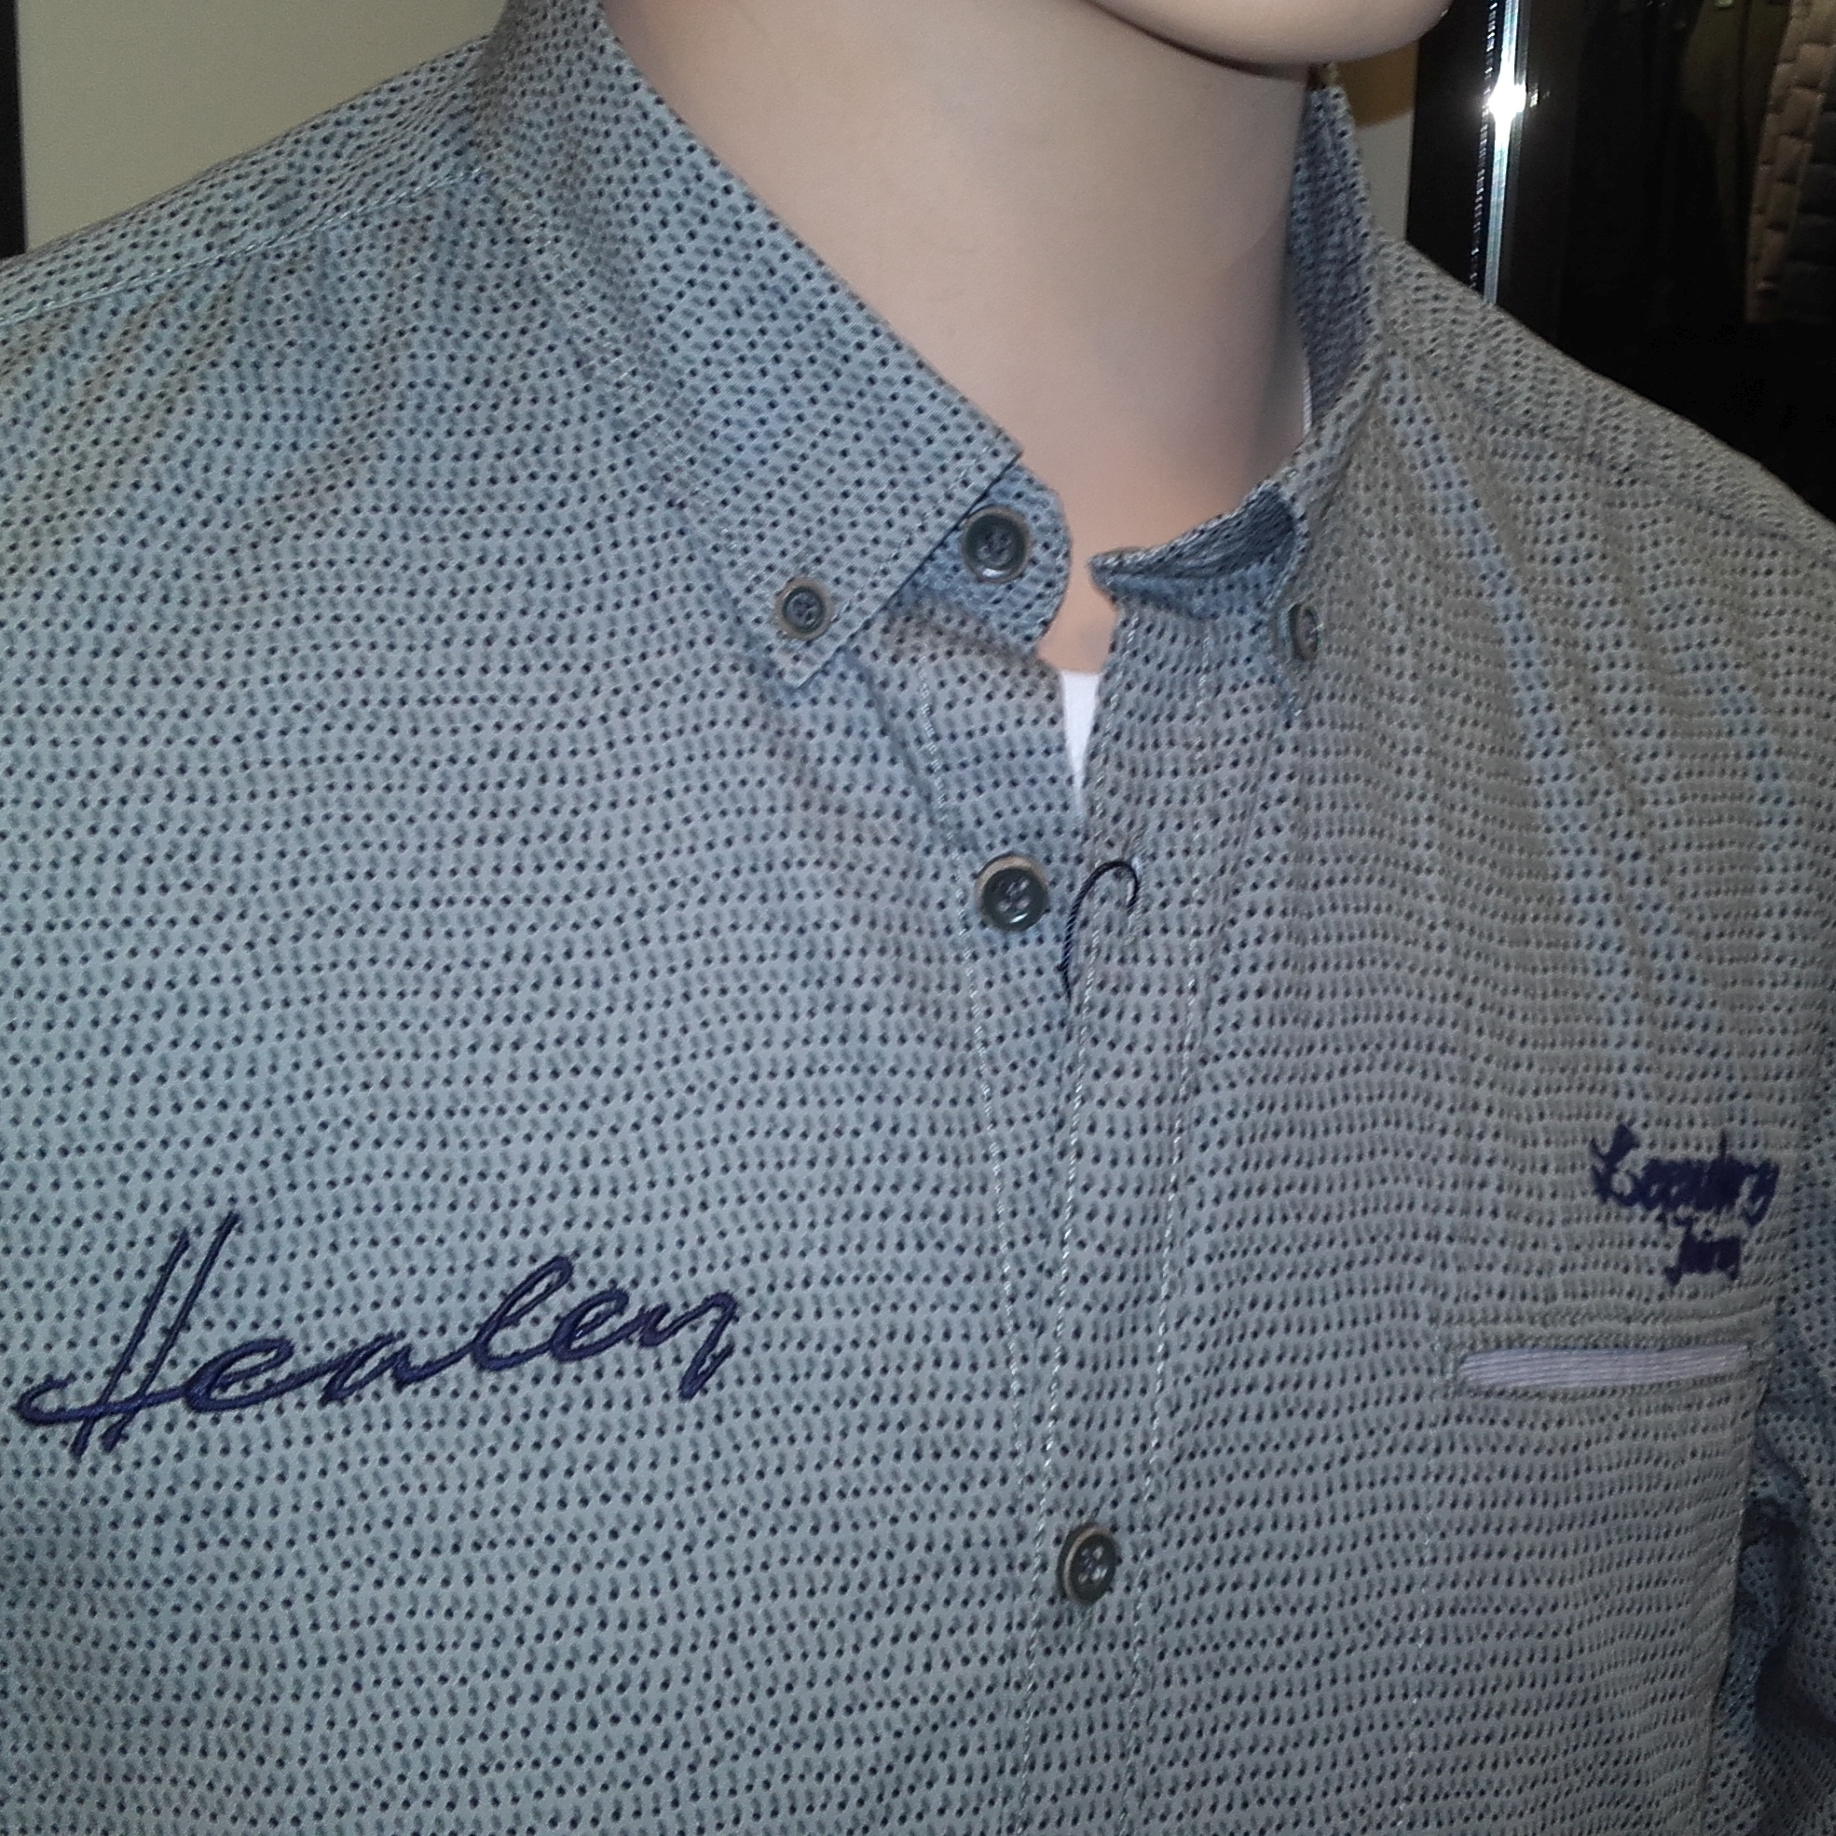 Healey Legendary Journey Shirt